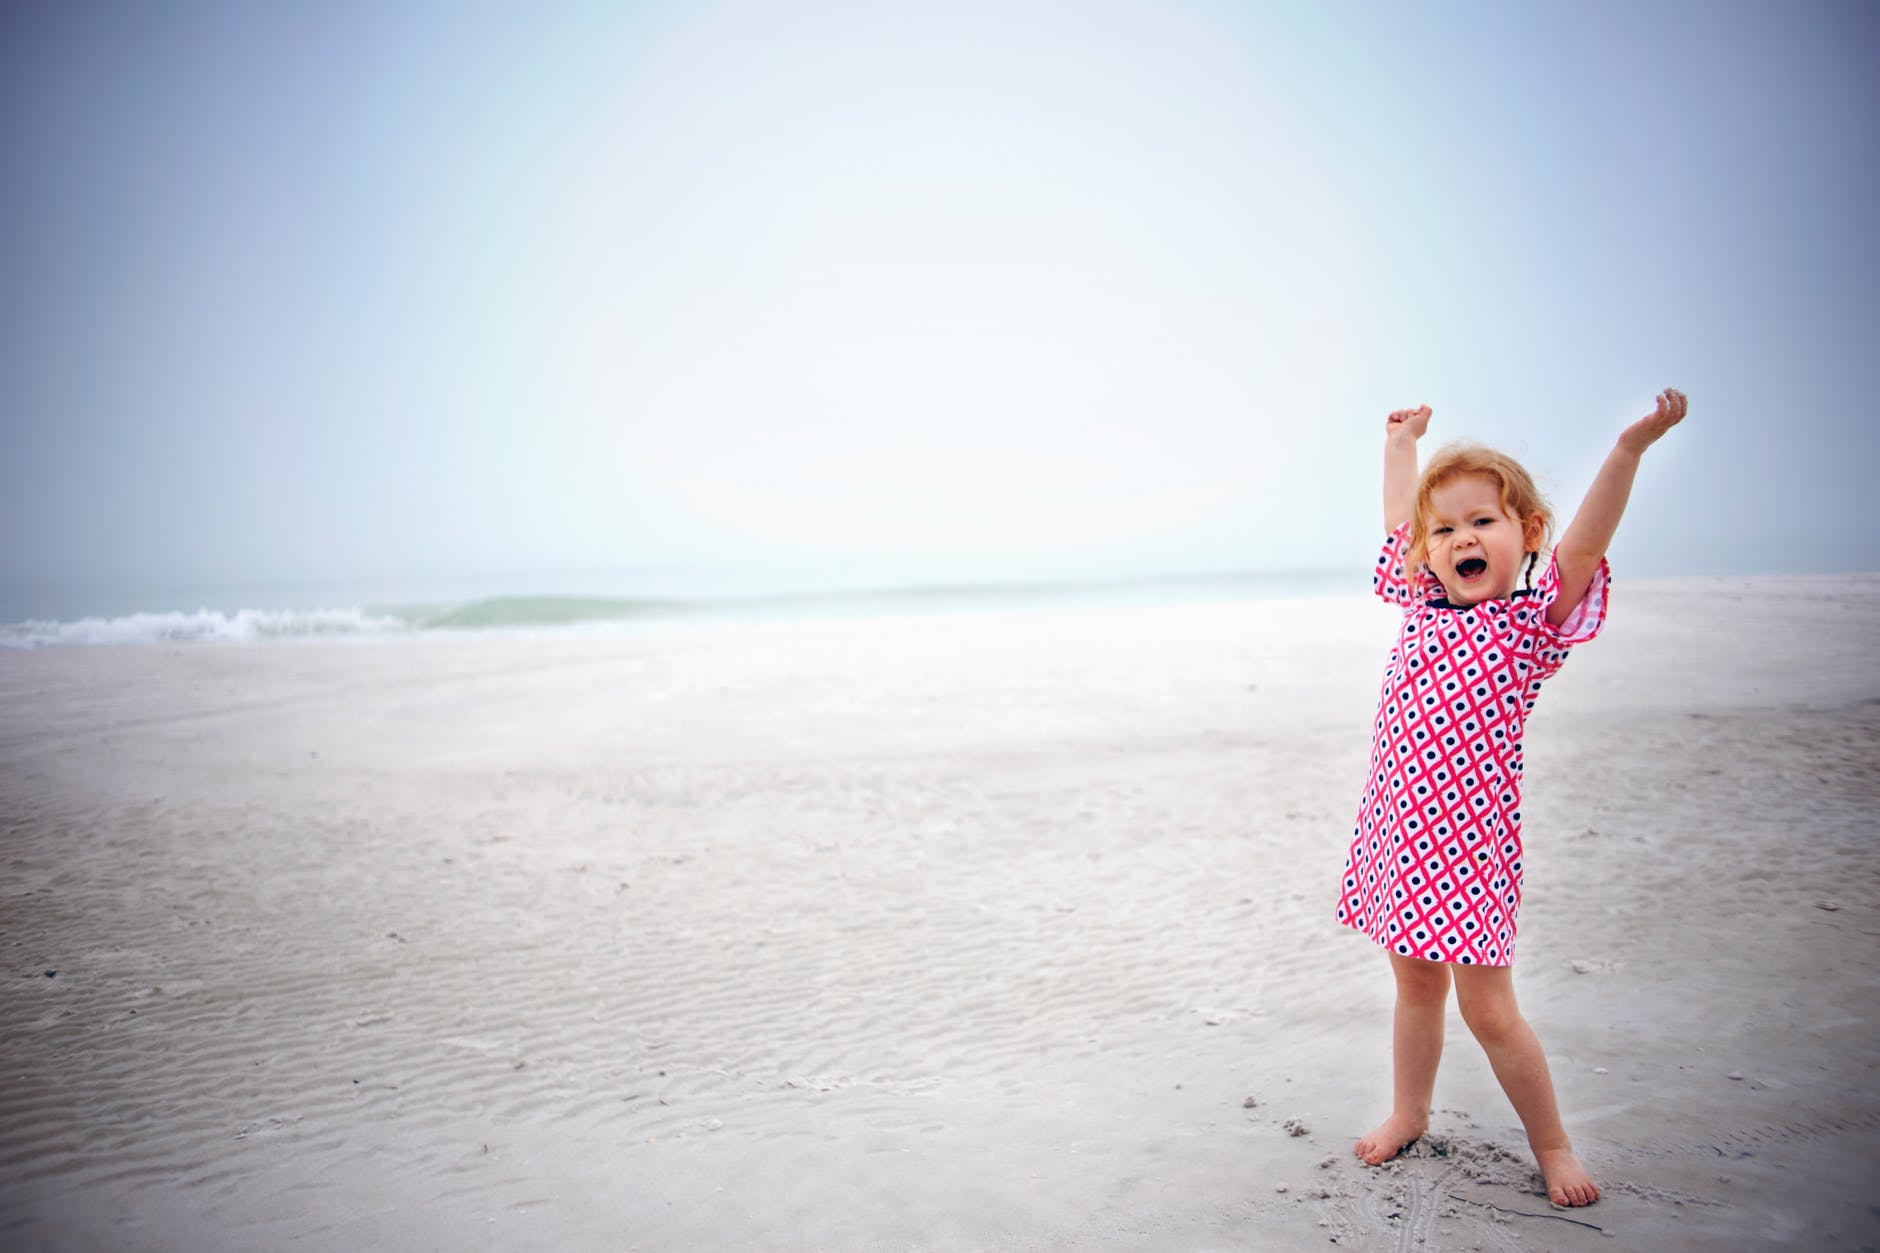 10 Tips for Safely Traveling with Children